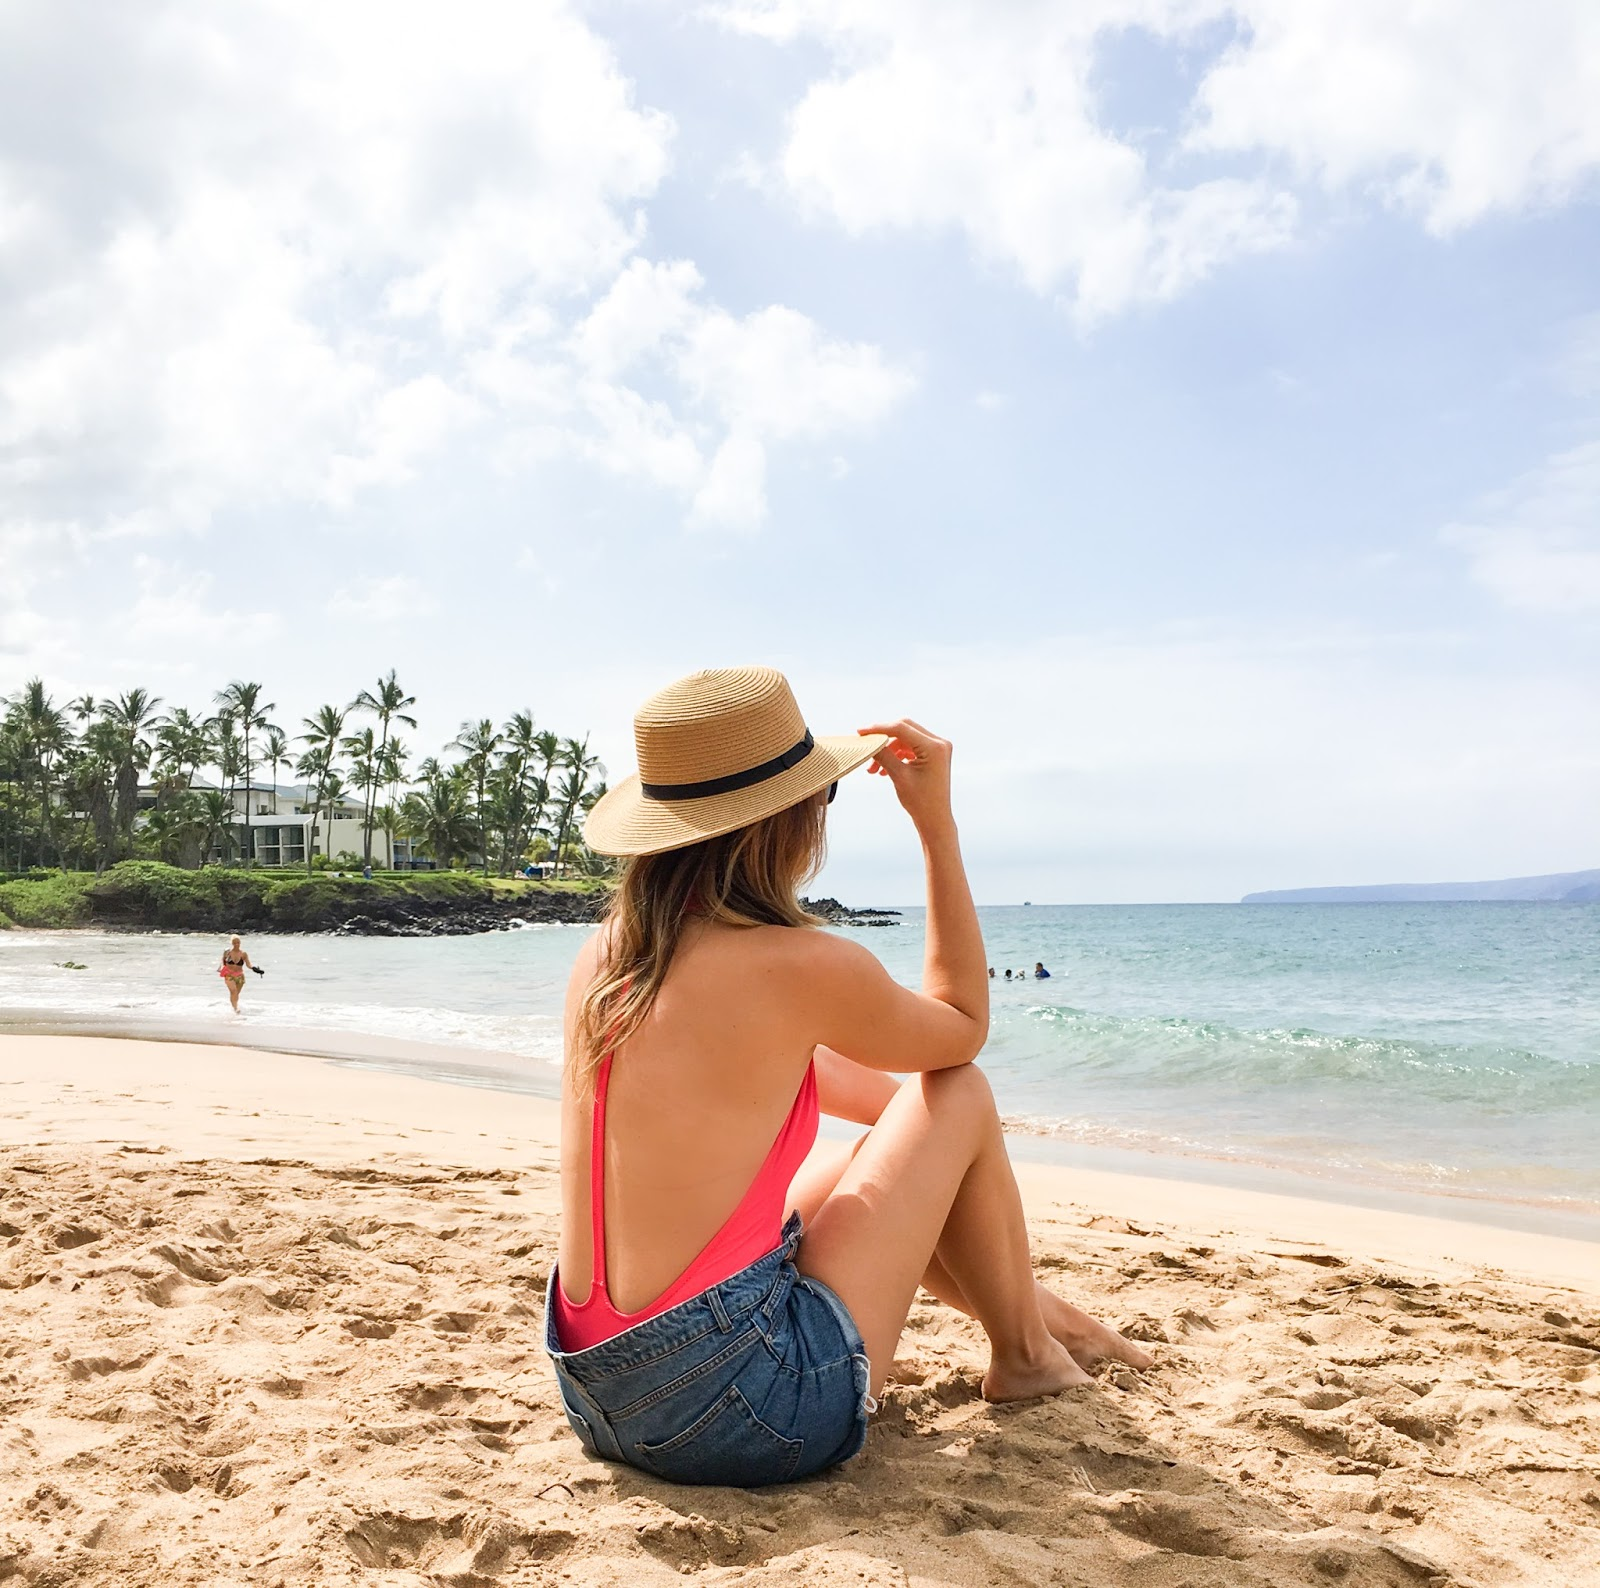 Awesome Things To Do In Maui by popular Colorado blogger Eat Pray Wear Love